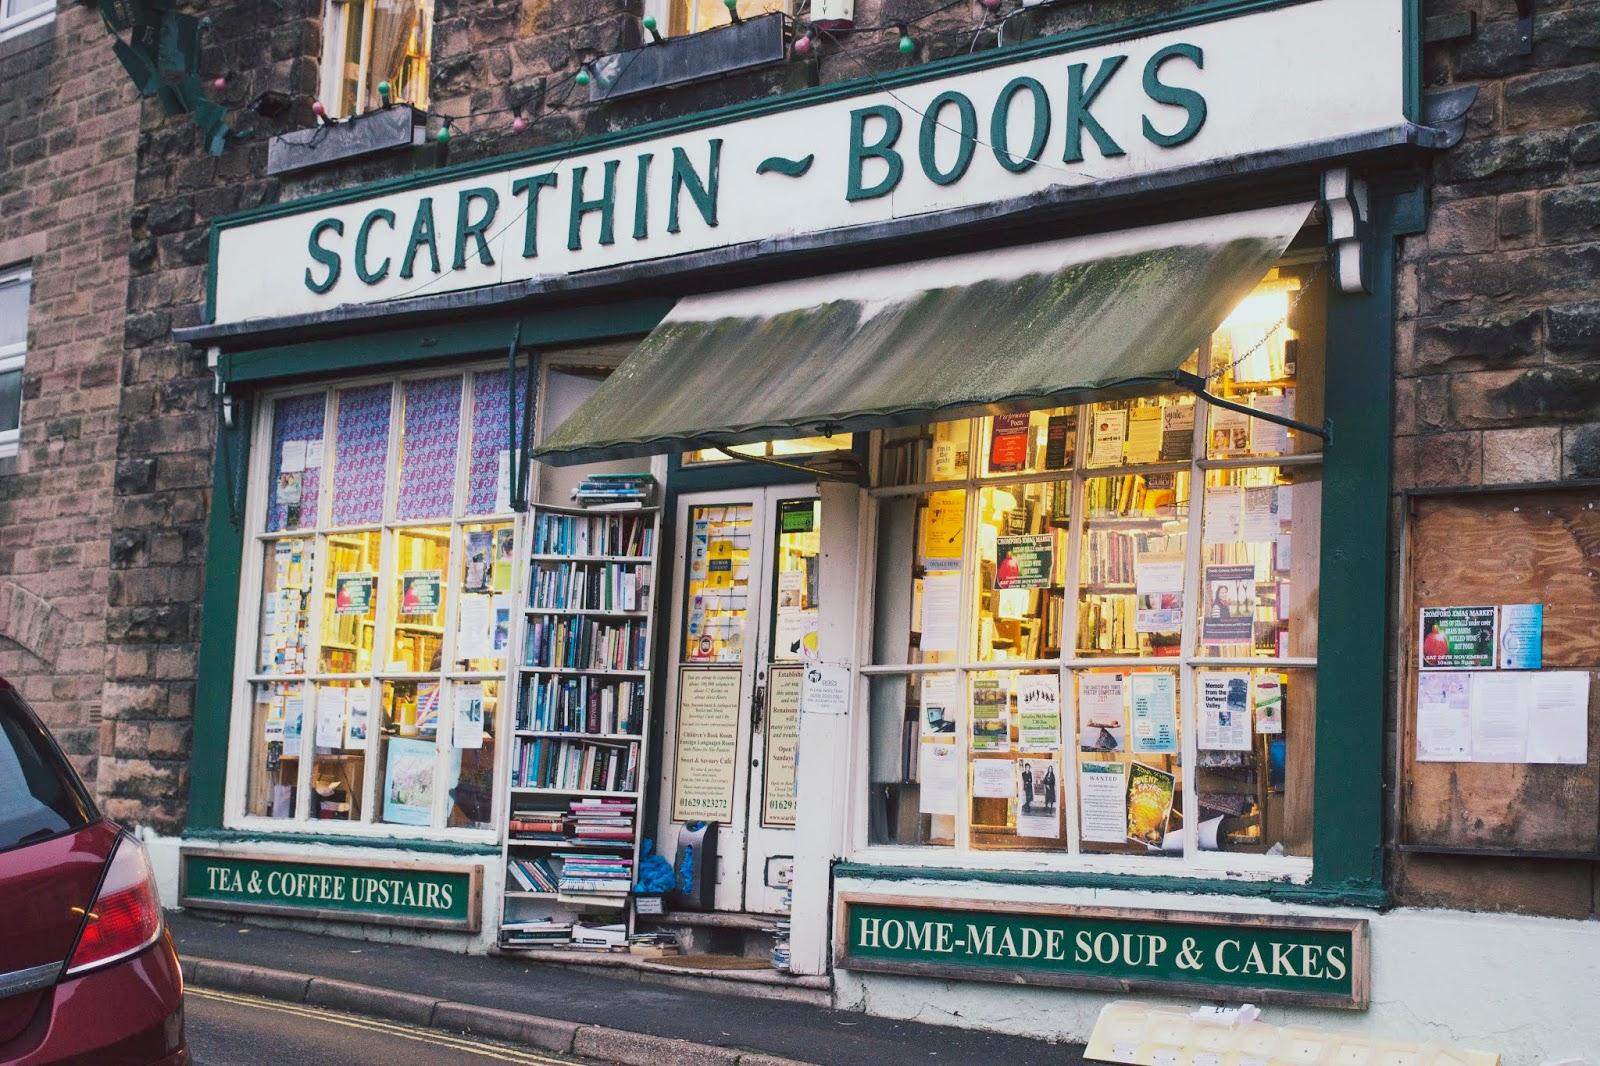 Scarthin Books, Derbyshire, Derbyshire Dales, Bookshops, Peak District, Derbyshire Delights, Blog,